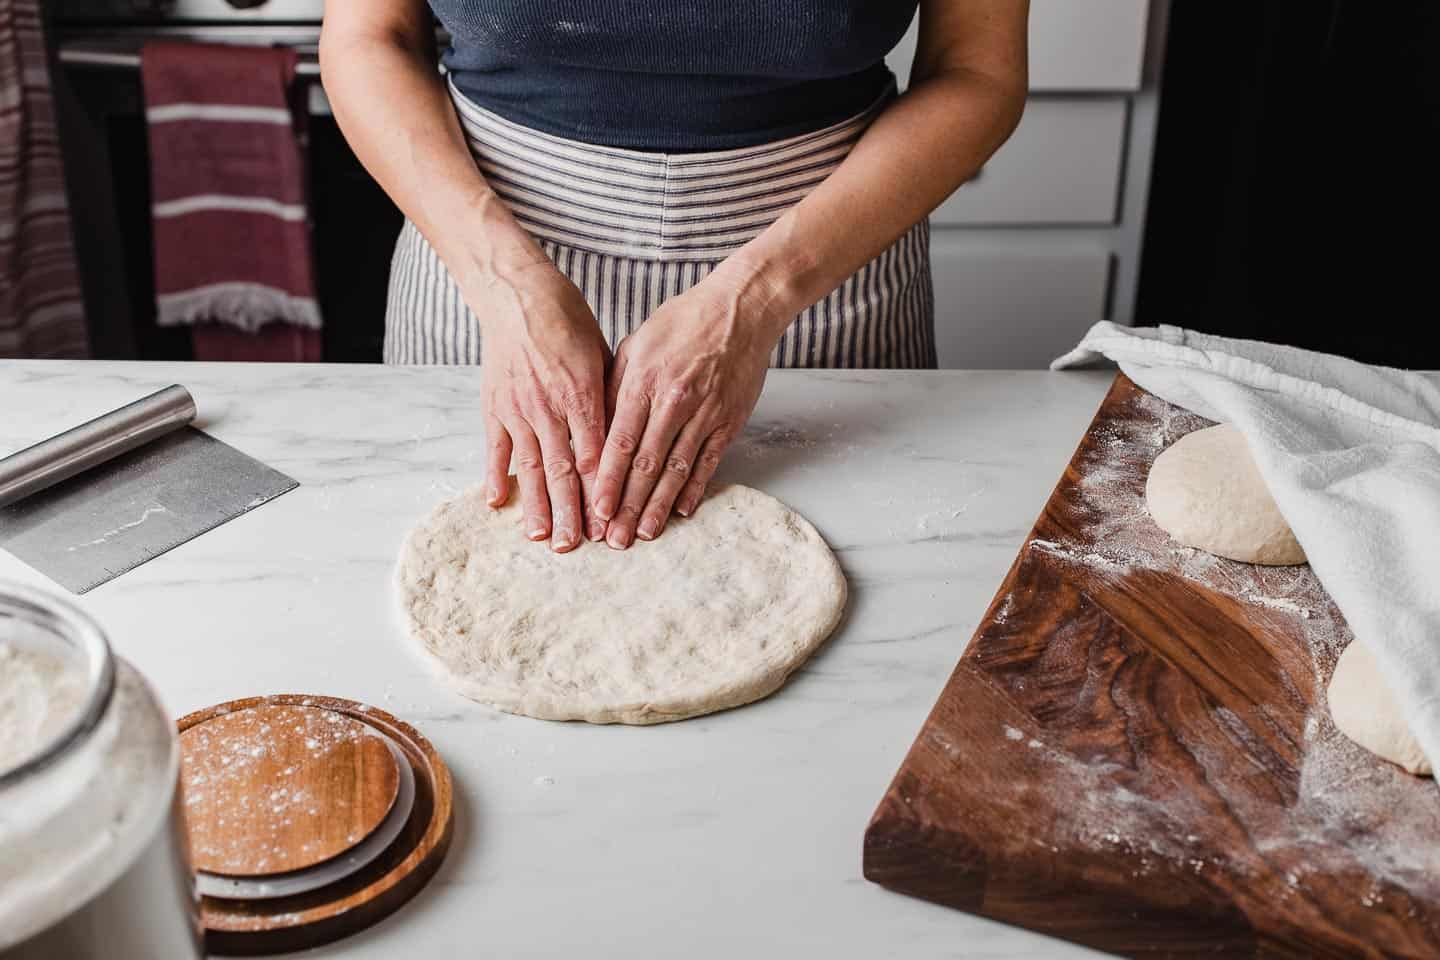 A woman shaping a sourdough pizza crust.